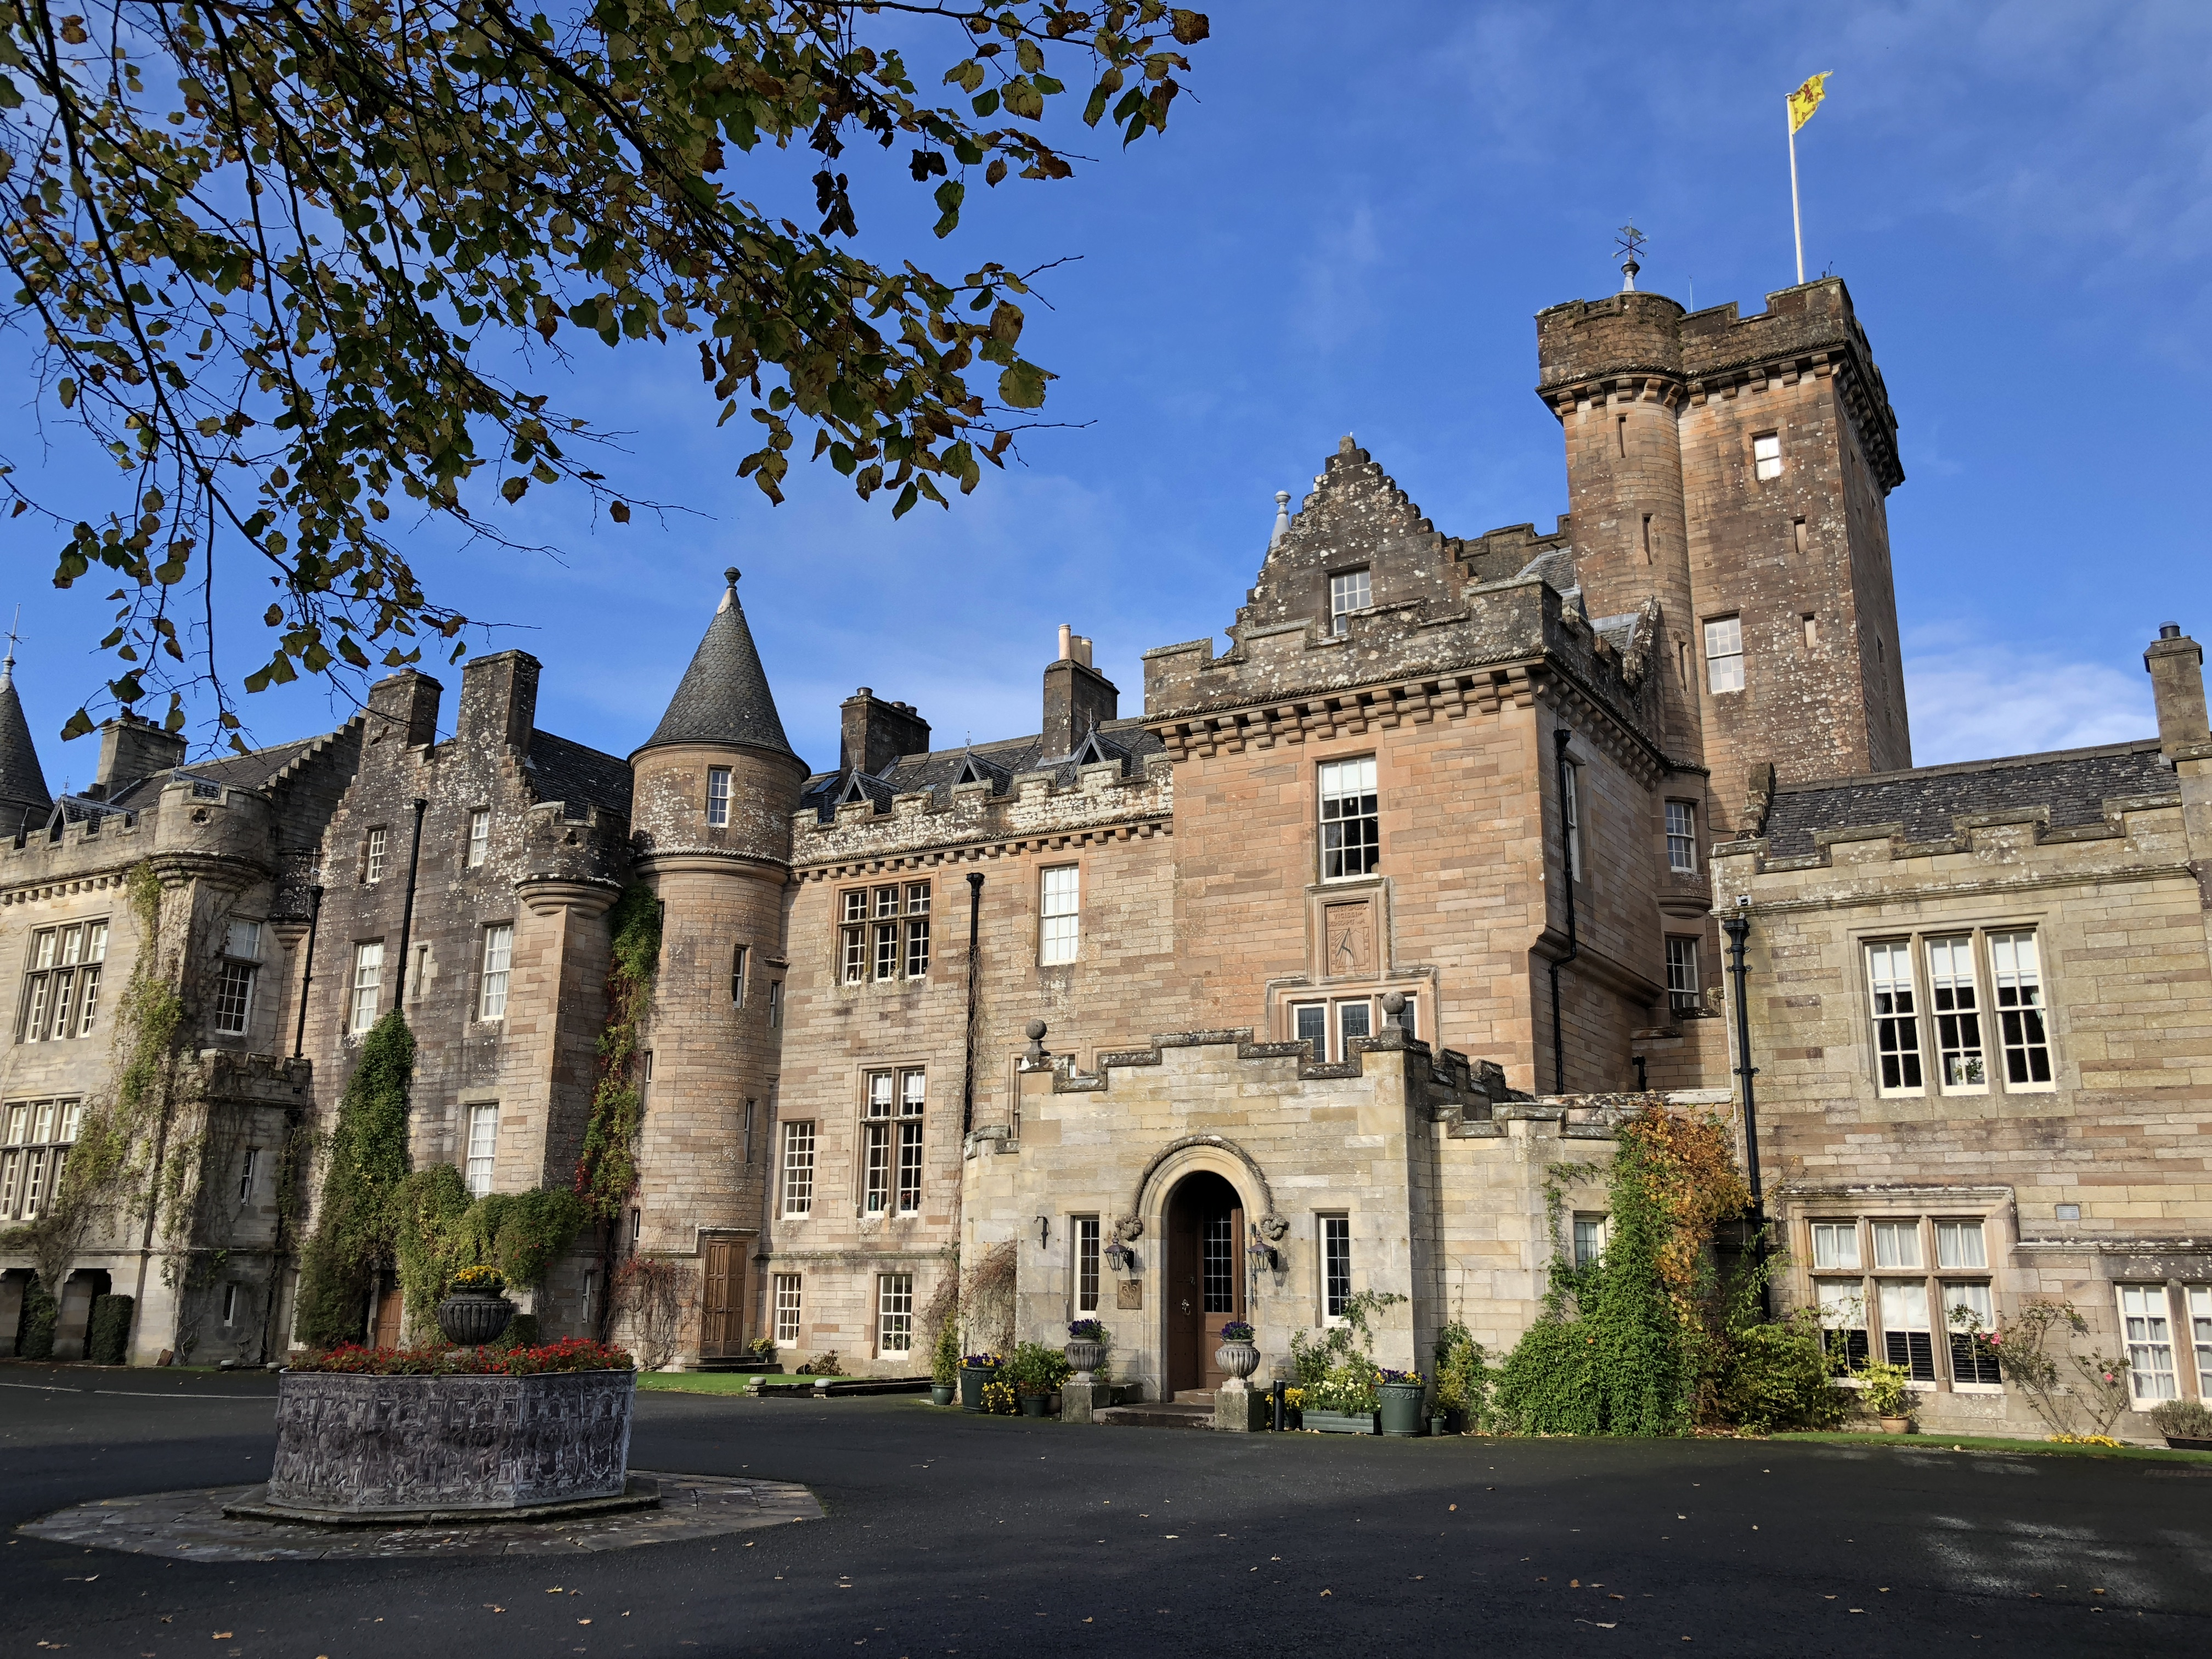 Bask in the Romance and History of Scotland's Glenapp Castle